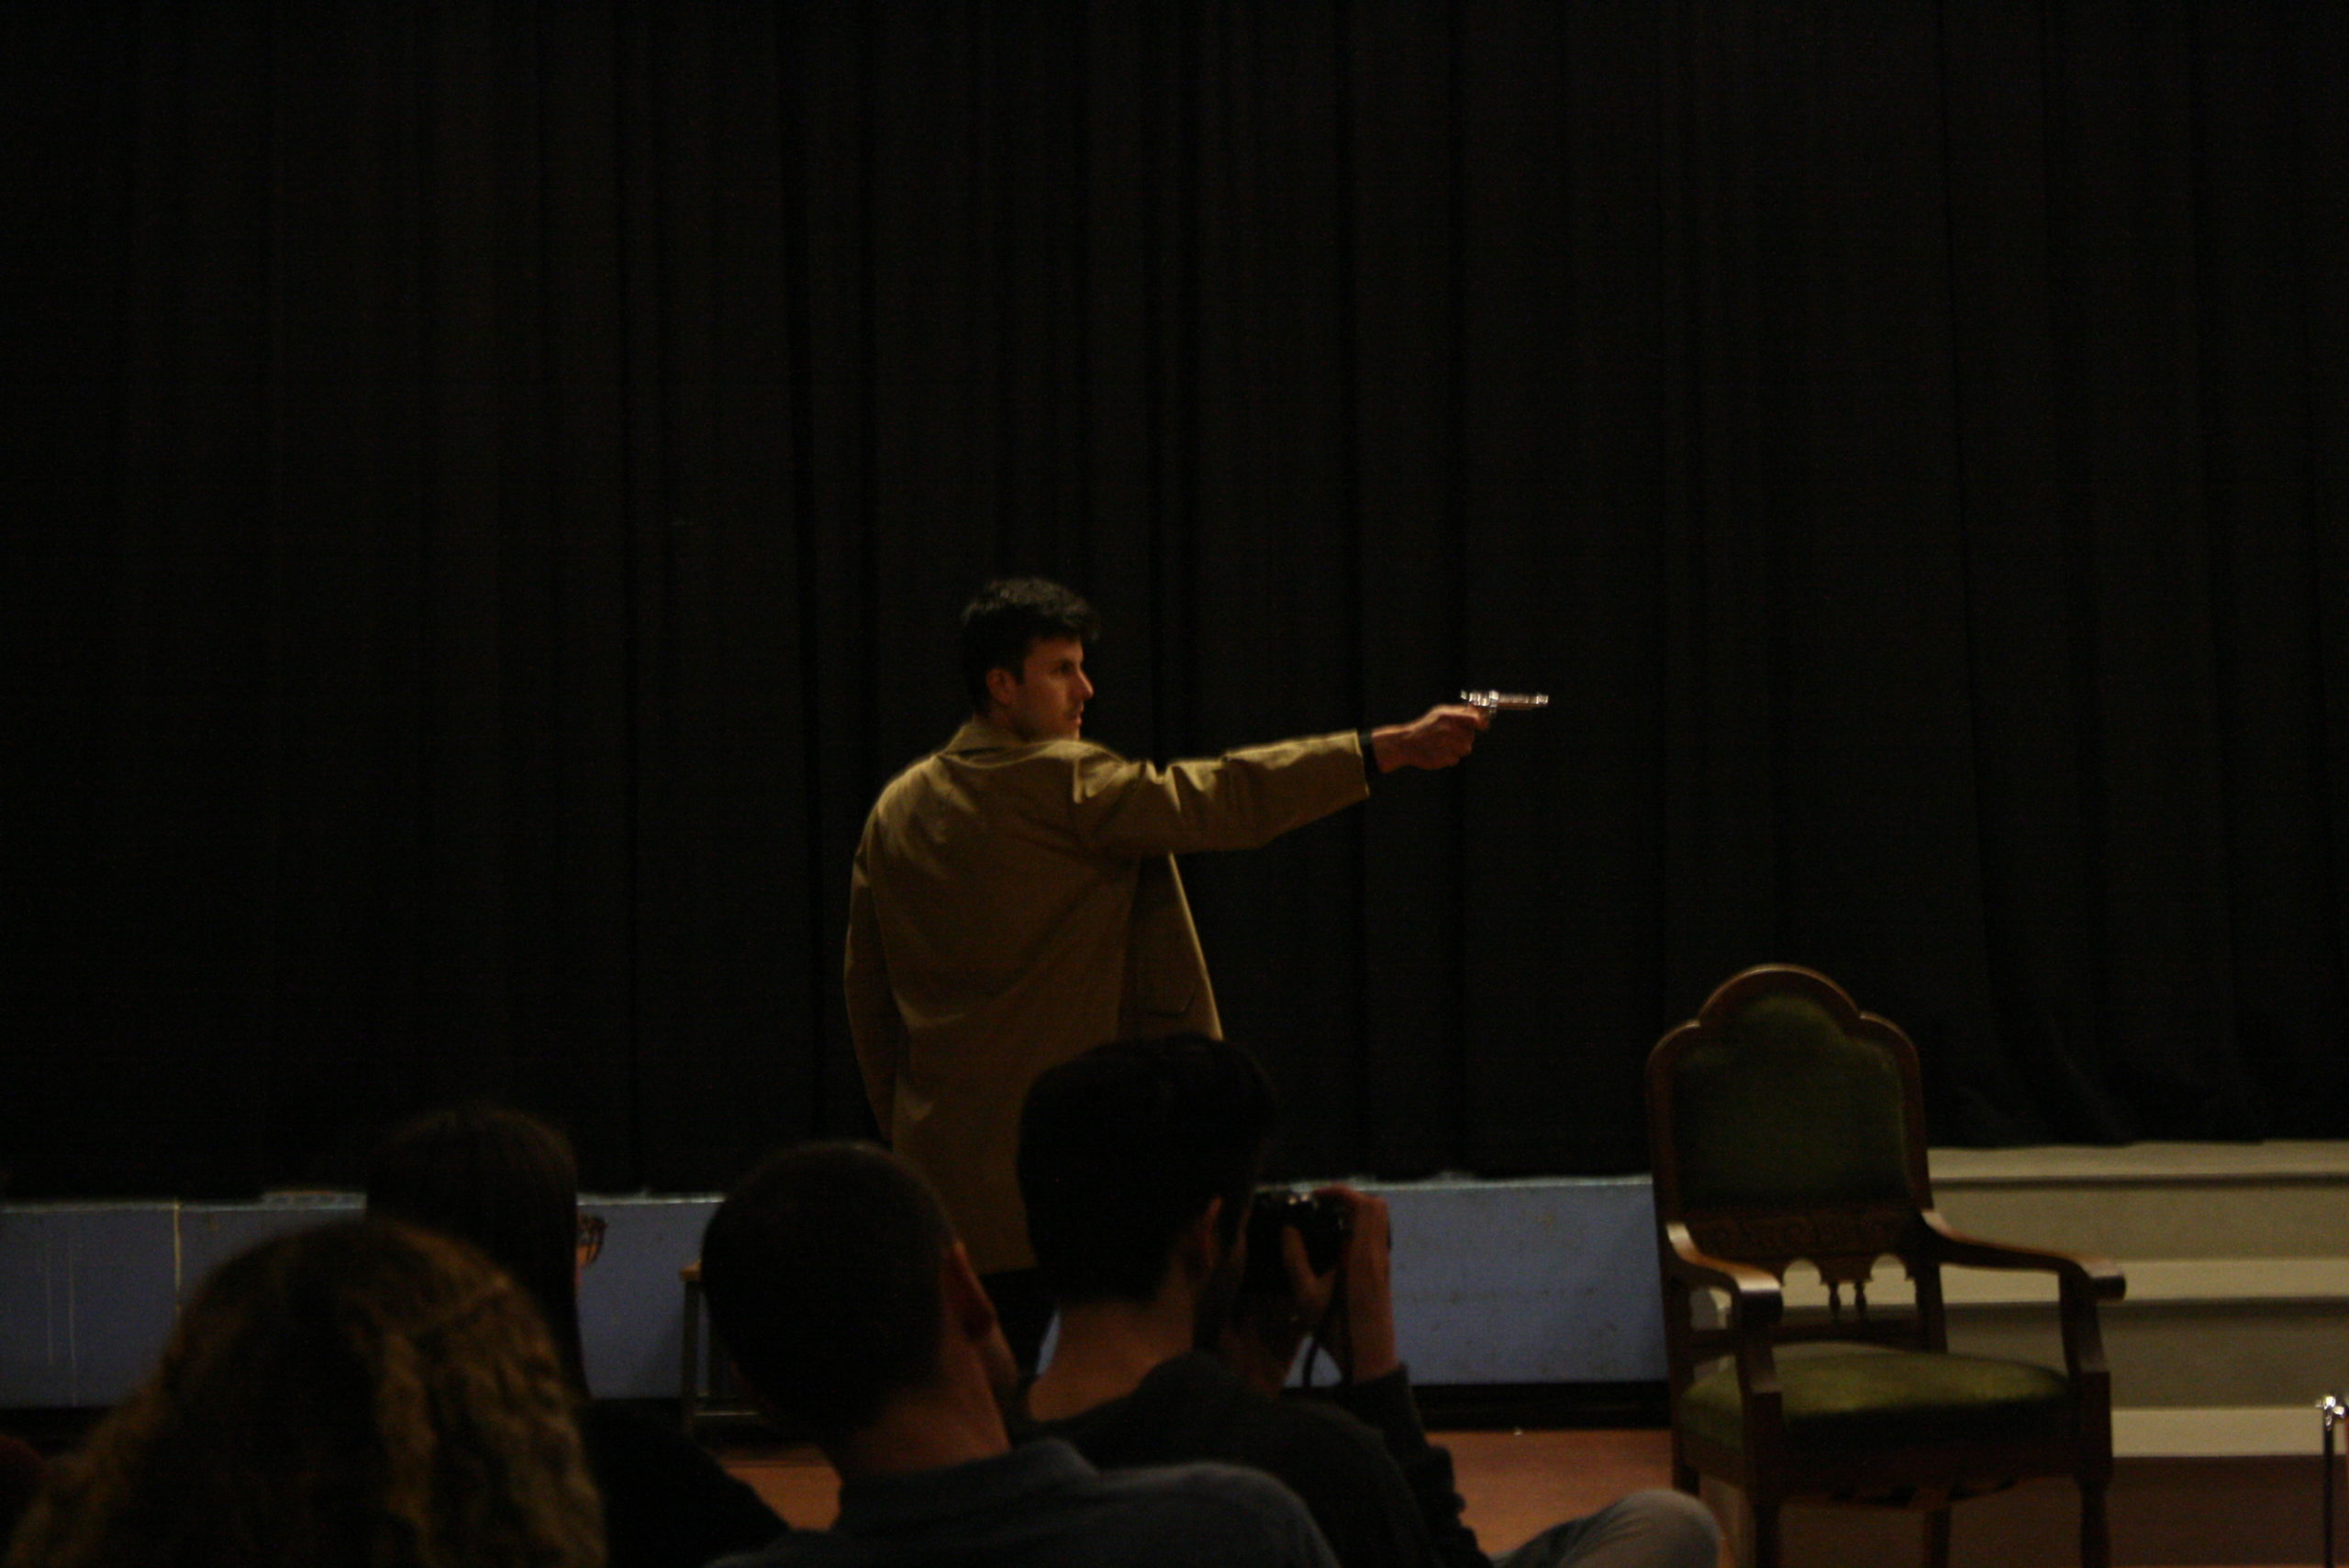 "Photo from the show ""Skin of our Teeth"". Man with half-long beige coat is pointing the gun at someone out of the picture"